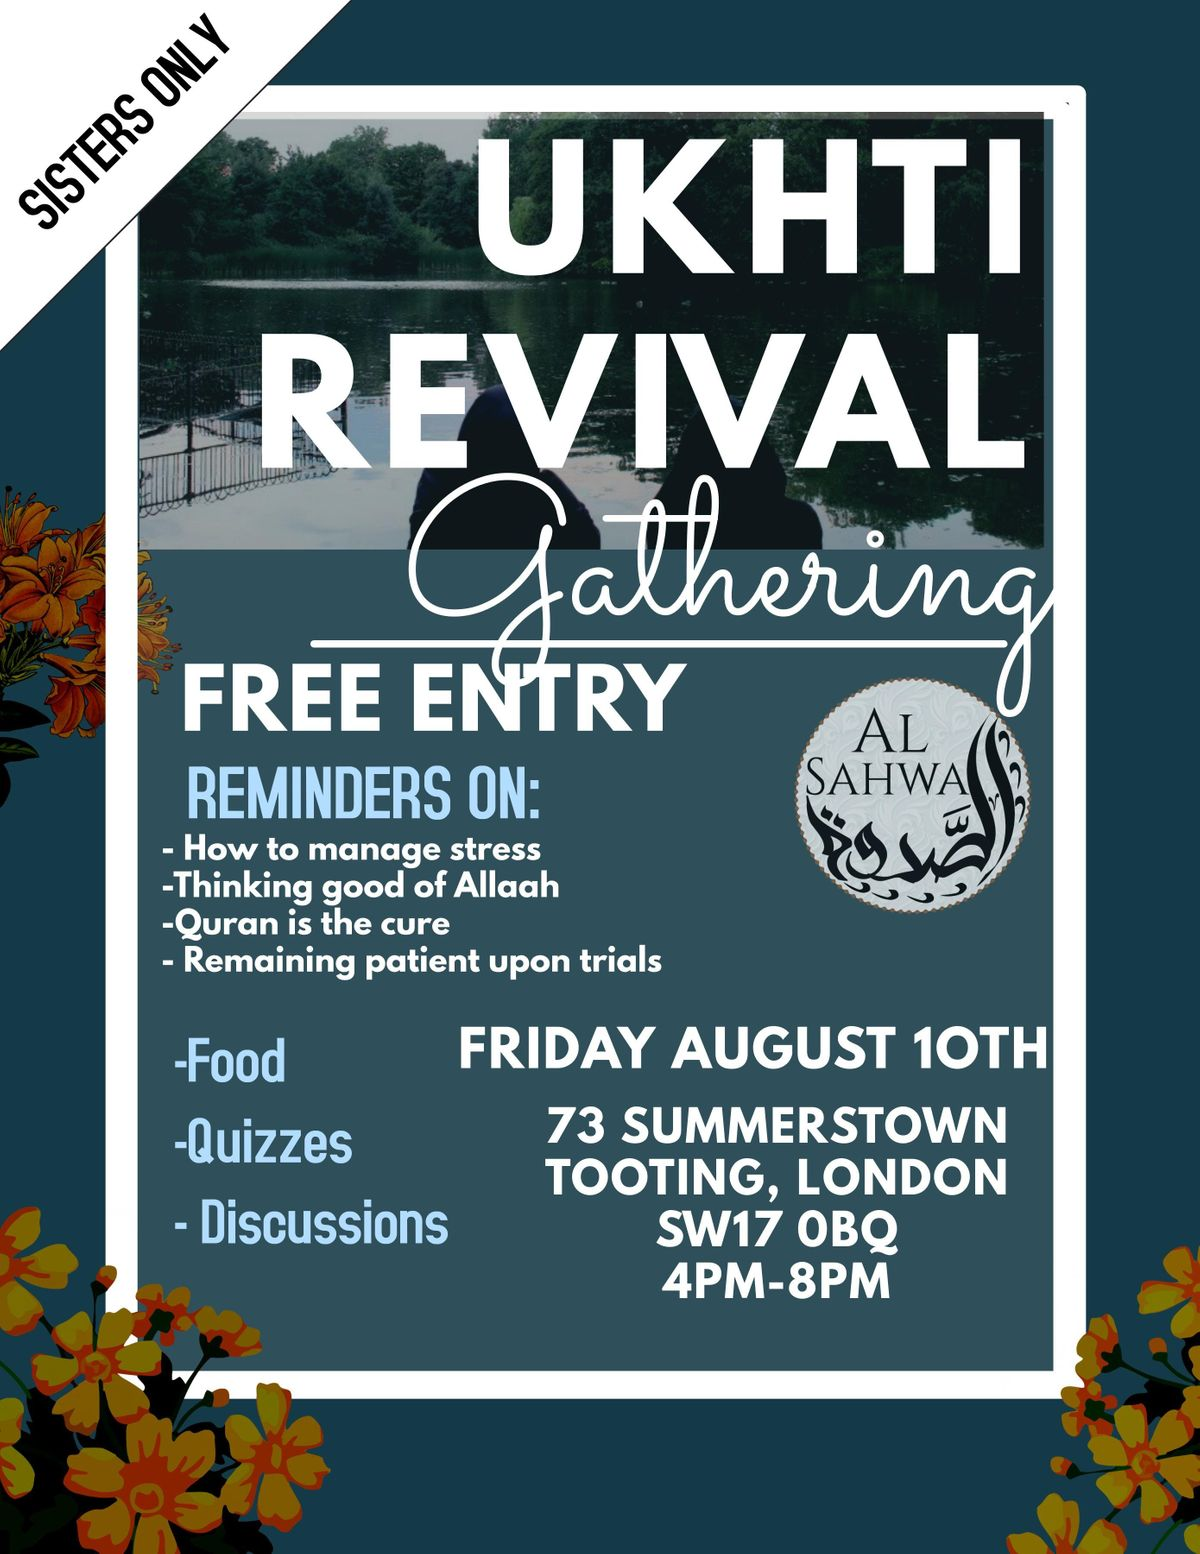 FIRST UKHTI REVIVAL GATHERING